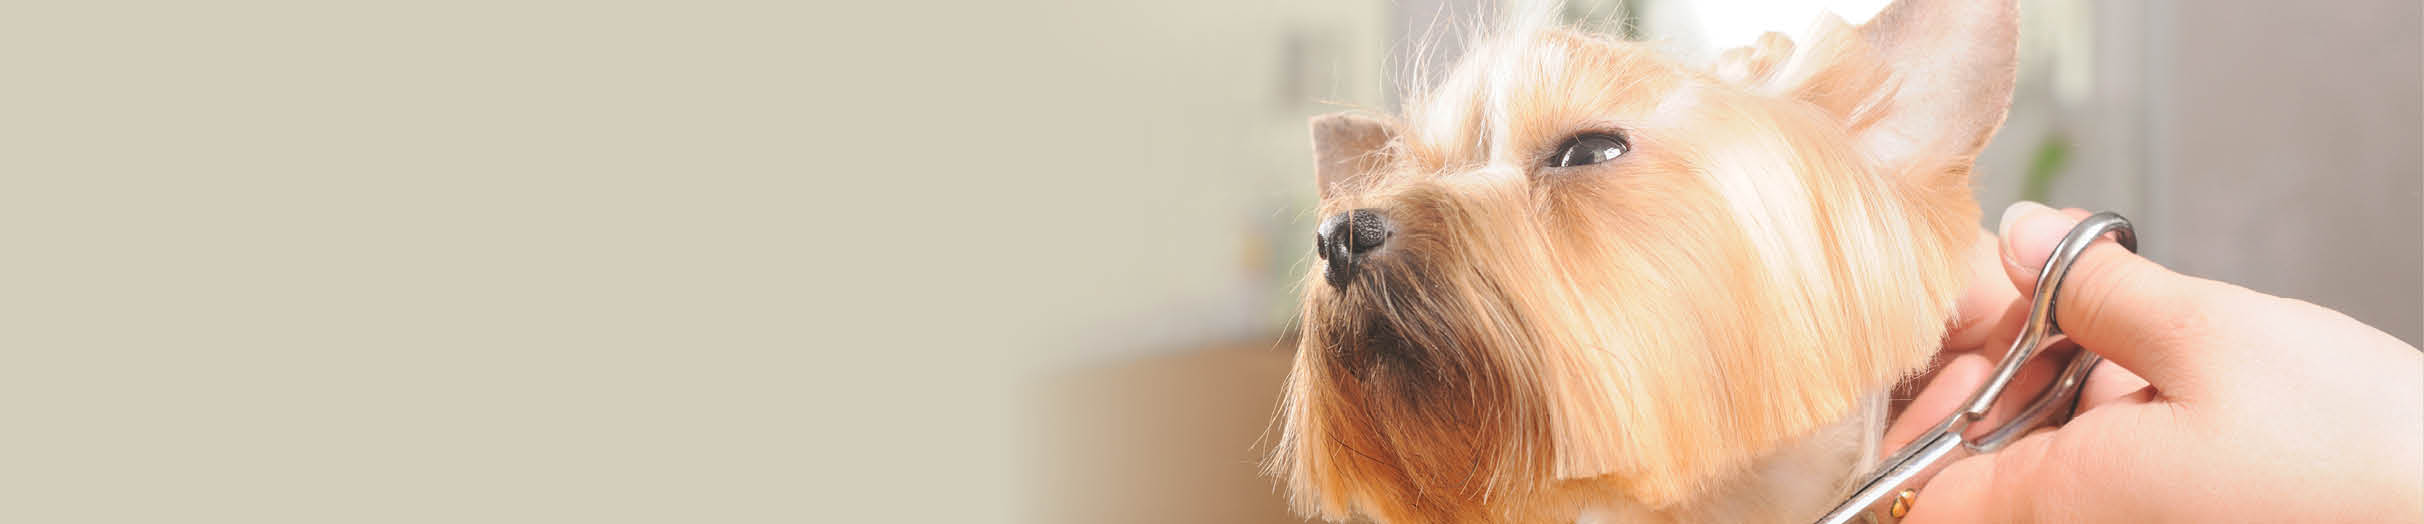 Buy dog grooming products online.